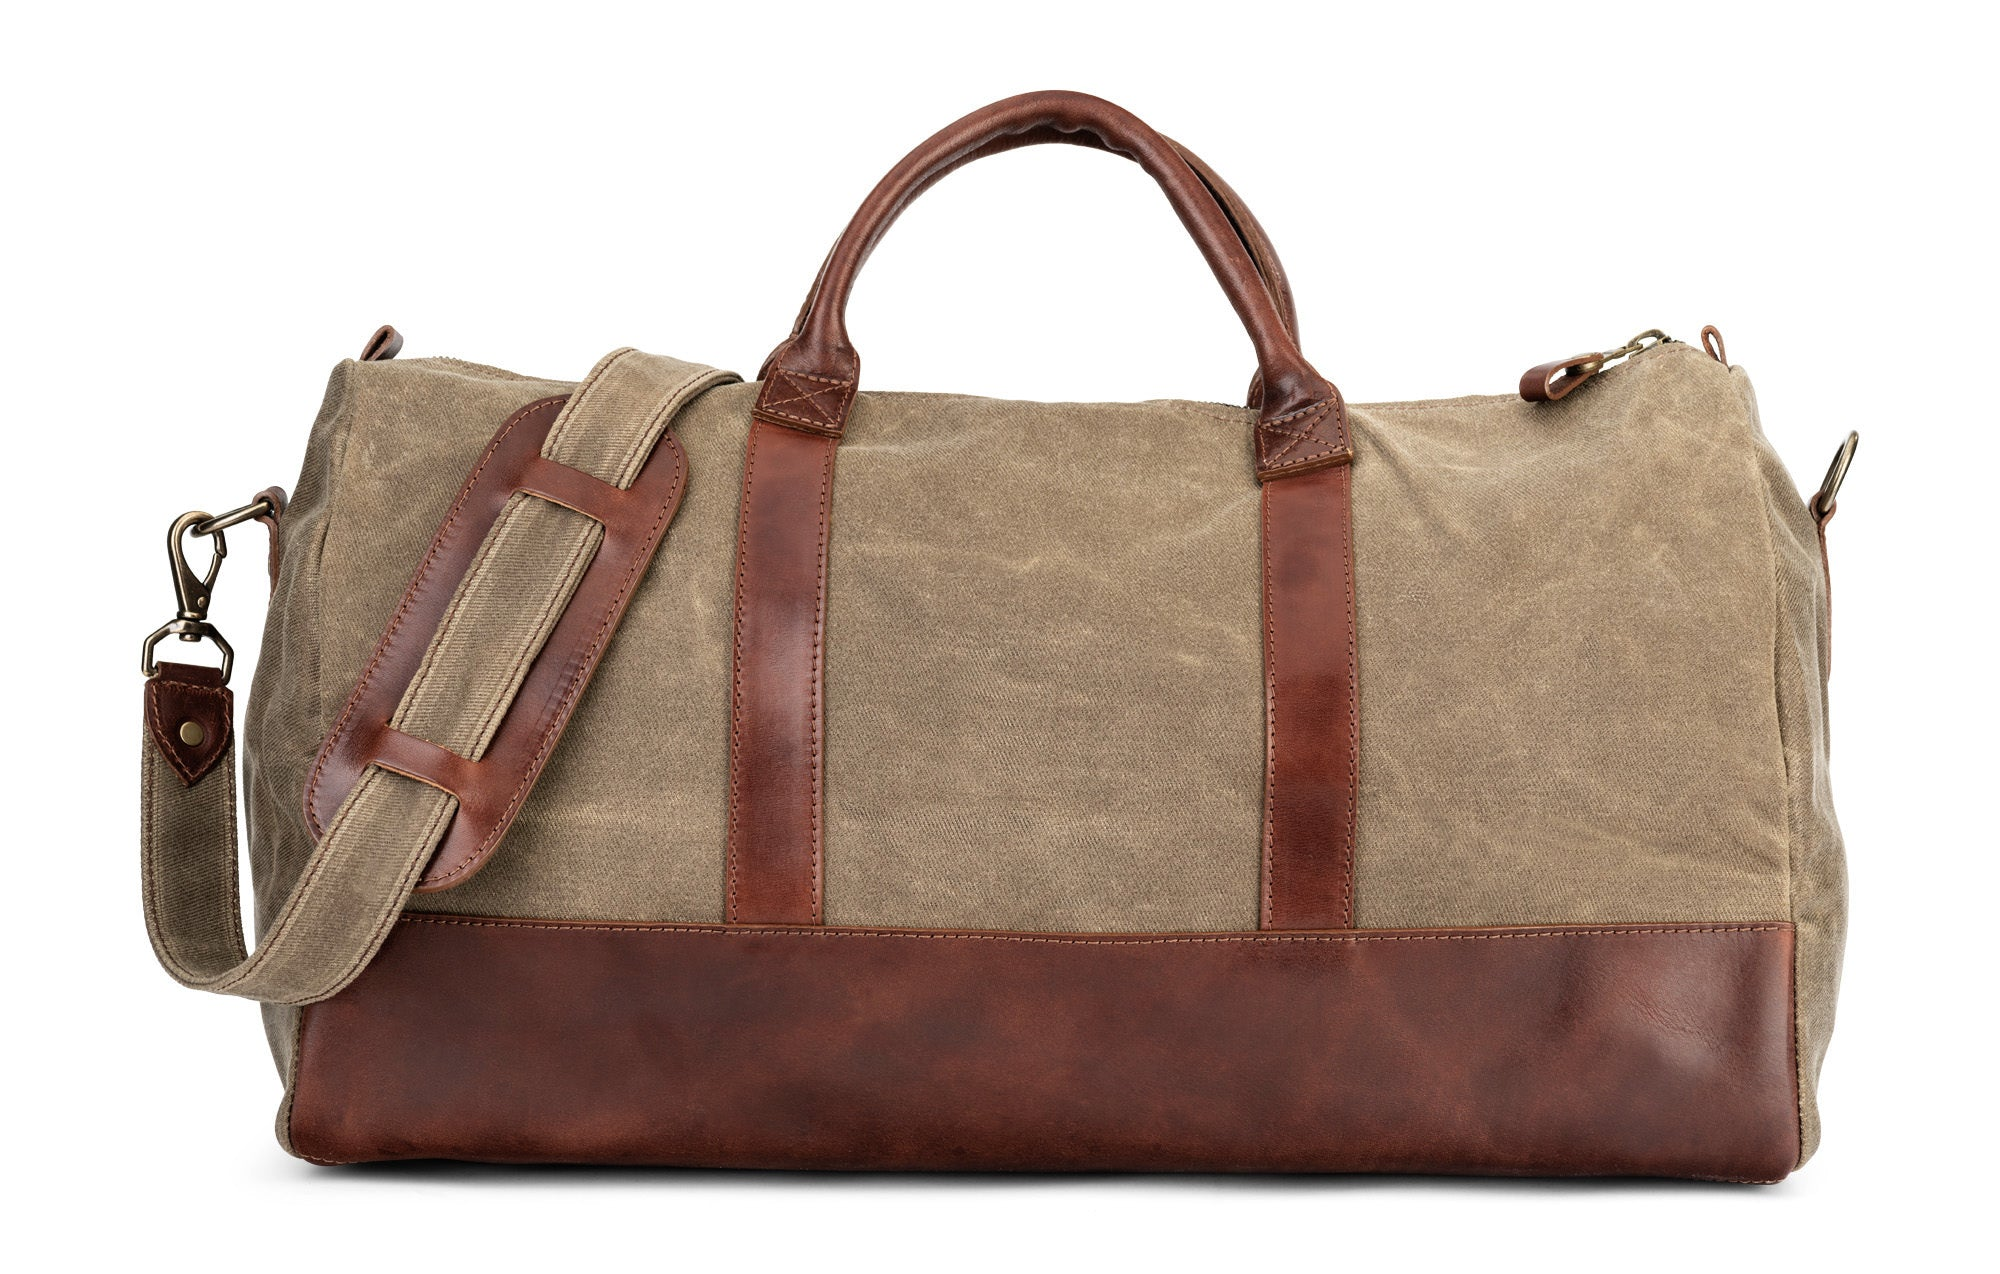 212192e75c ... jackson wayne full grain leather and waxed canvas weekender bag in  vintage brown made in usa ...